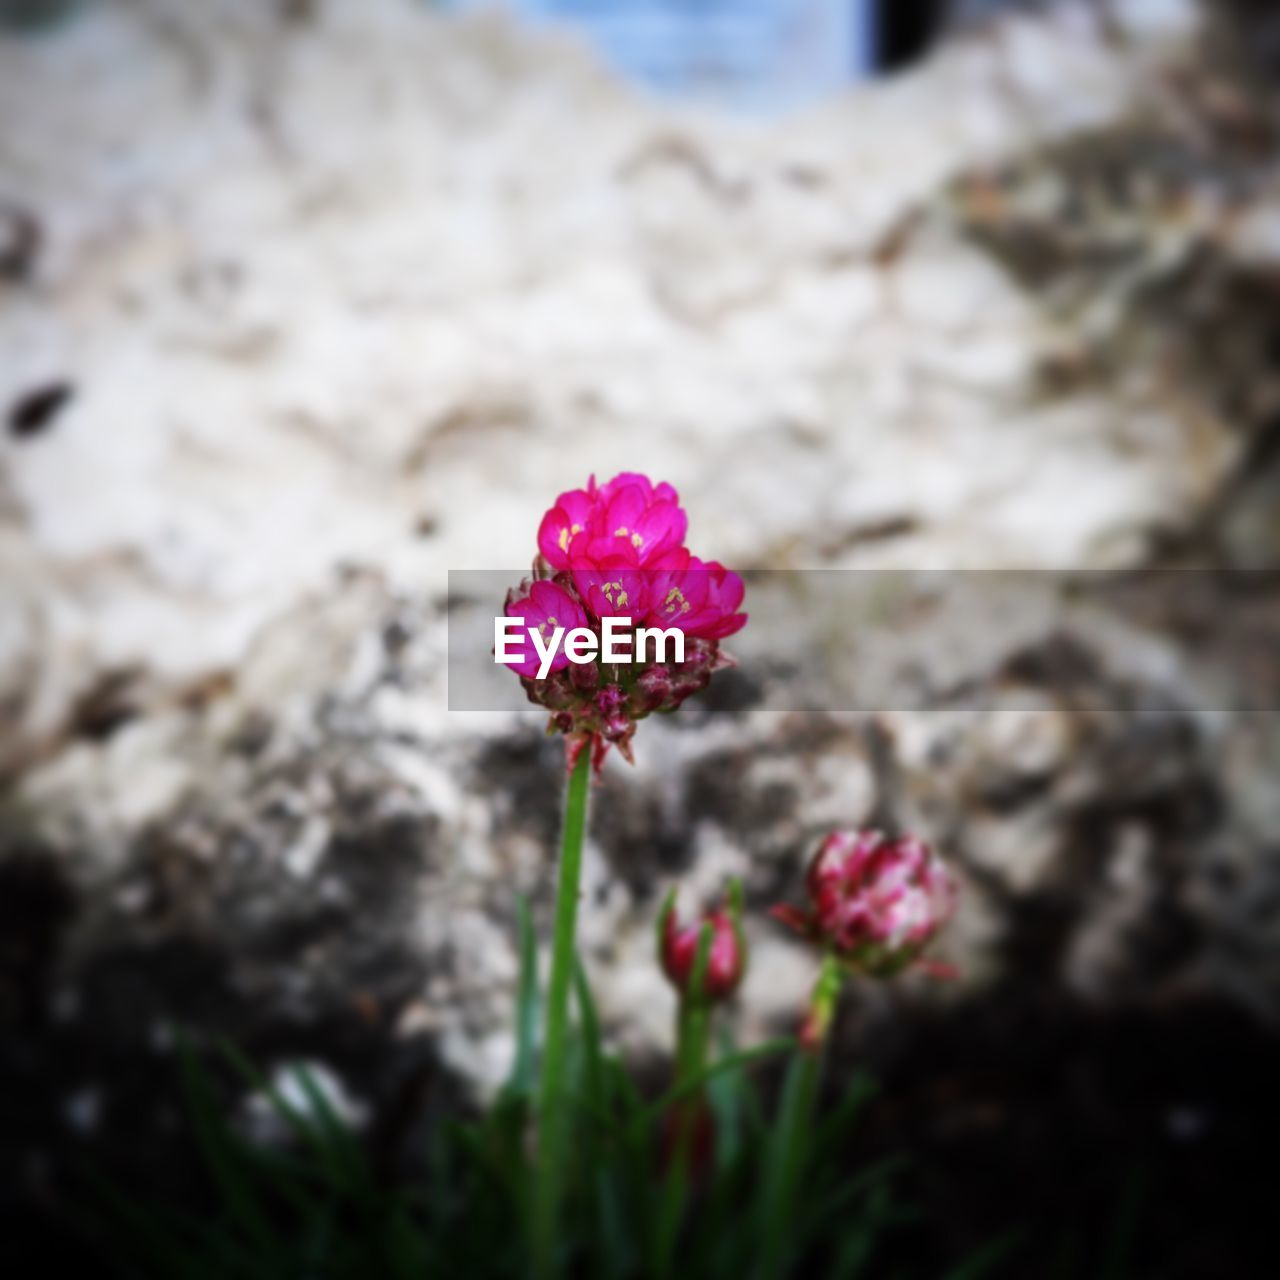 flower, pink color, fragility, nature, beauty in nature, petal, flower head, freshness, focus on foreground, growth, outdoors, day, no people, blooming, plant, close-up, zinnia, periwinkle